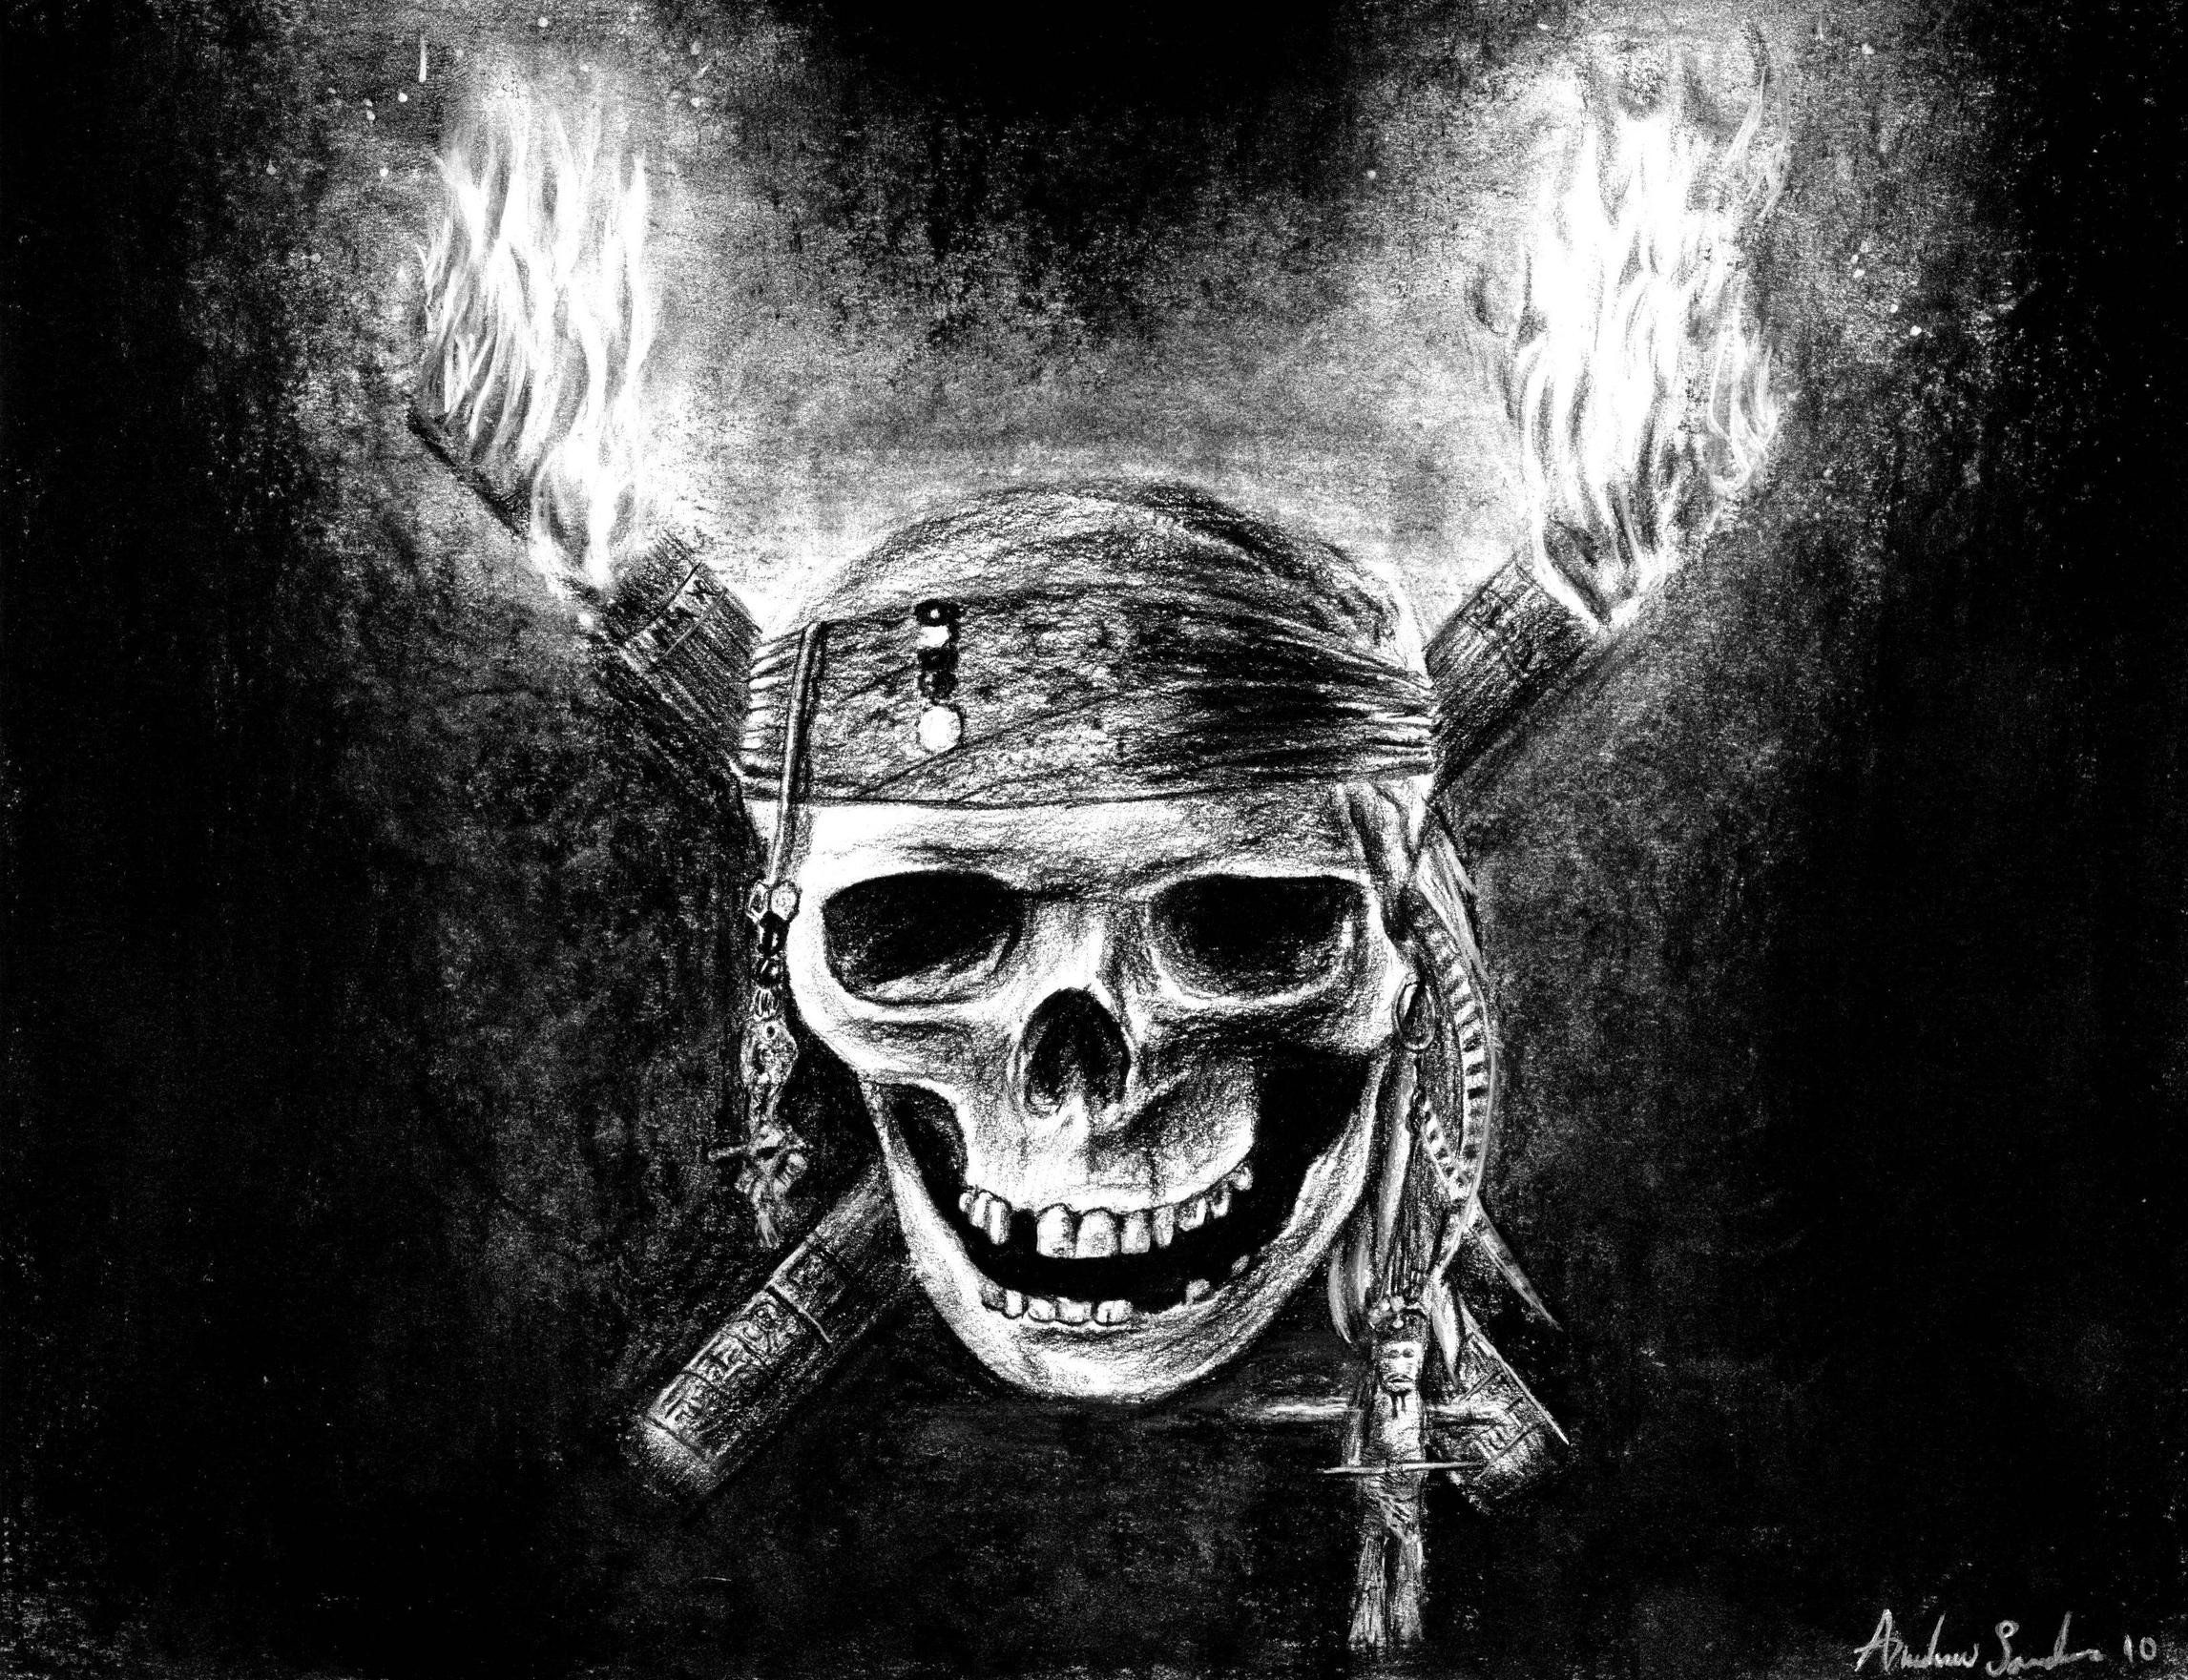 Scary skulls wallpaper 47 images - Scary skull backgrounds ...